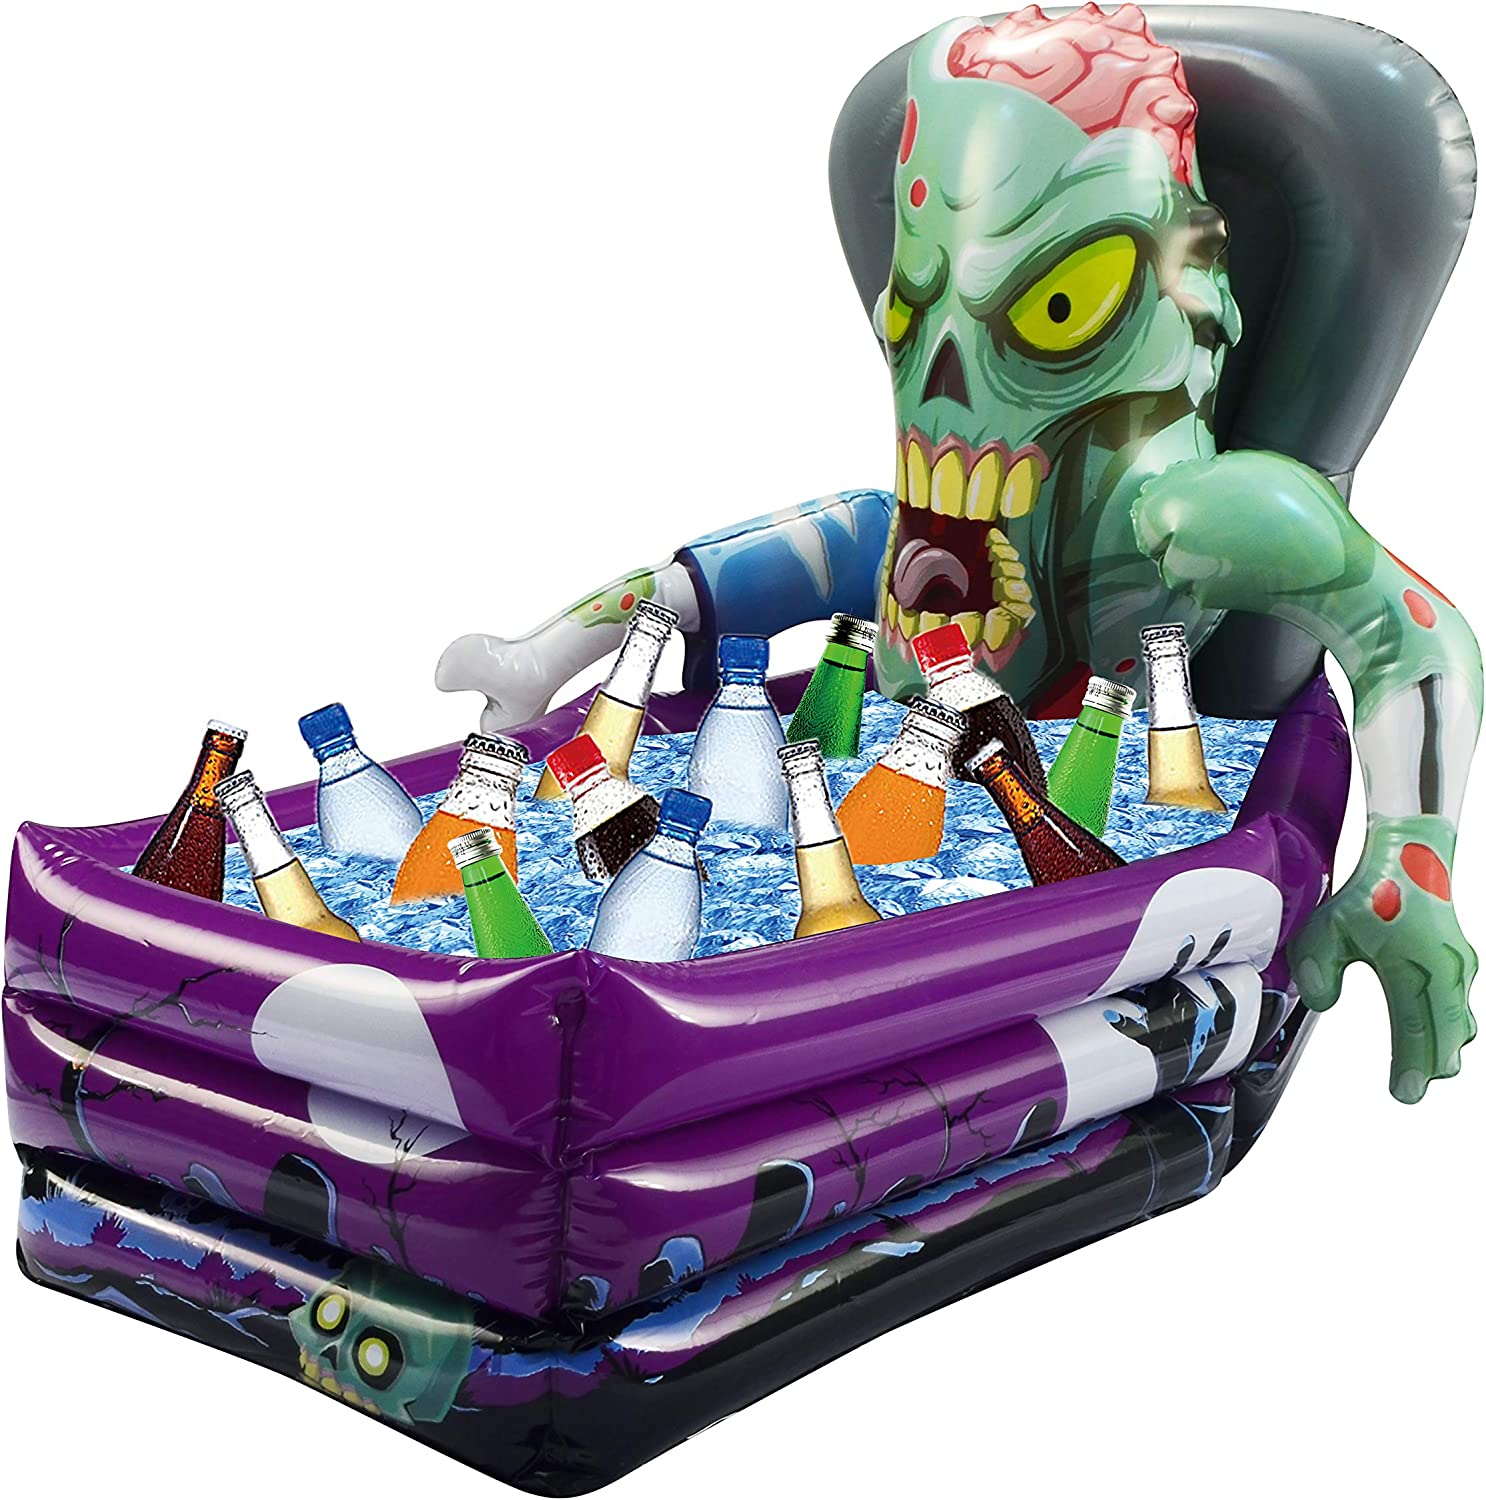 """JOYIN Halloween Party Inflatable Zombie Drink Cooler and Decoration (26""""x 24""""x 38"""" Approximate Inflated Size)"""